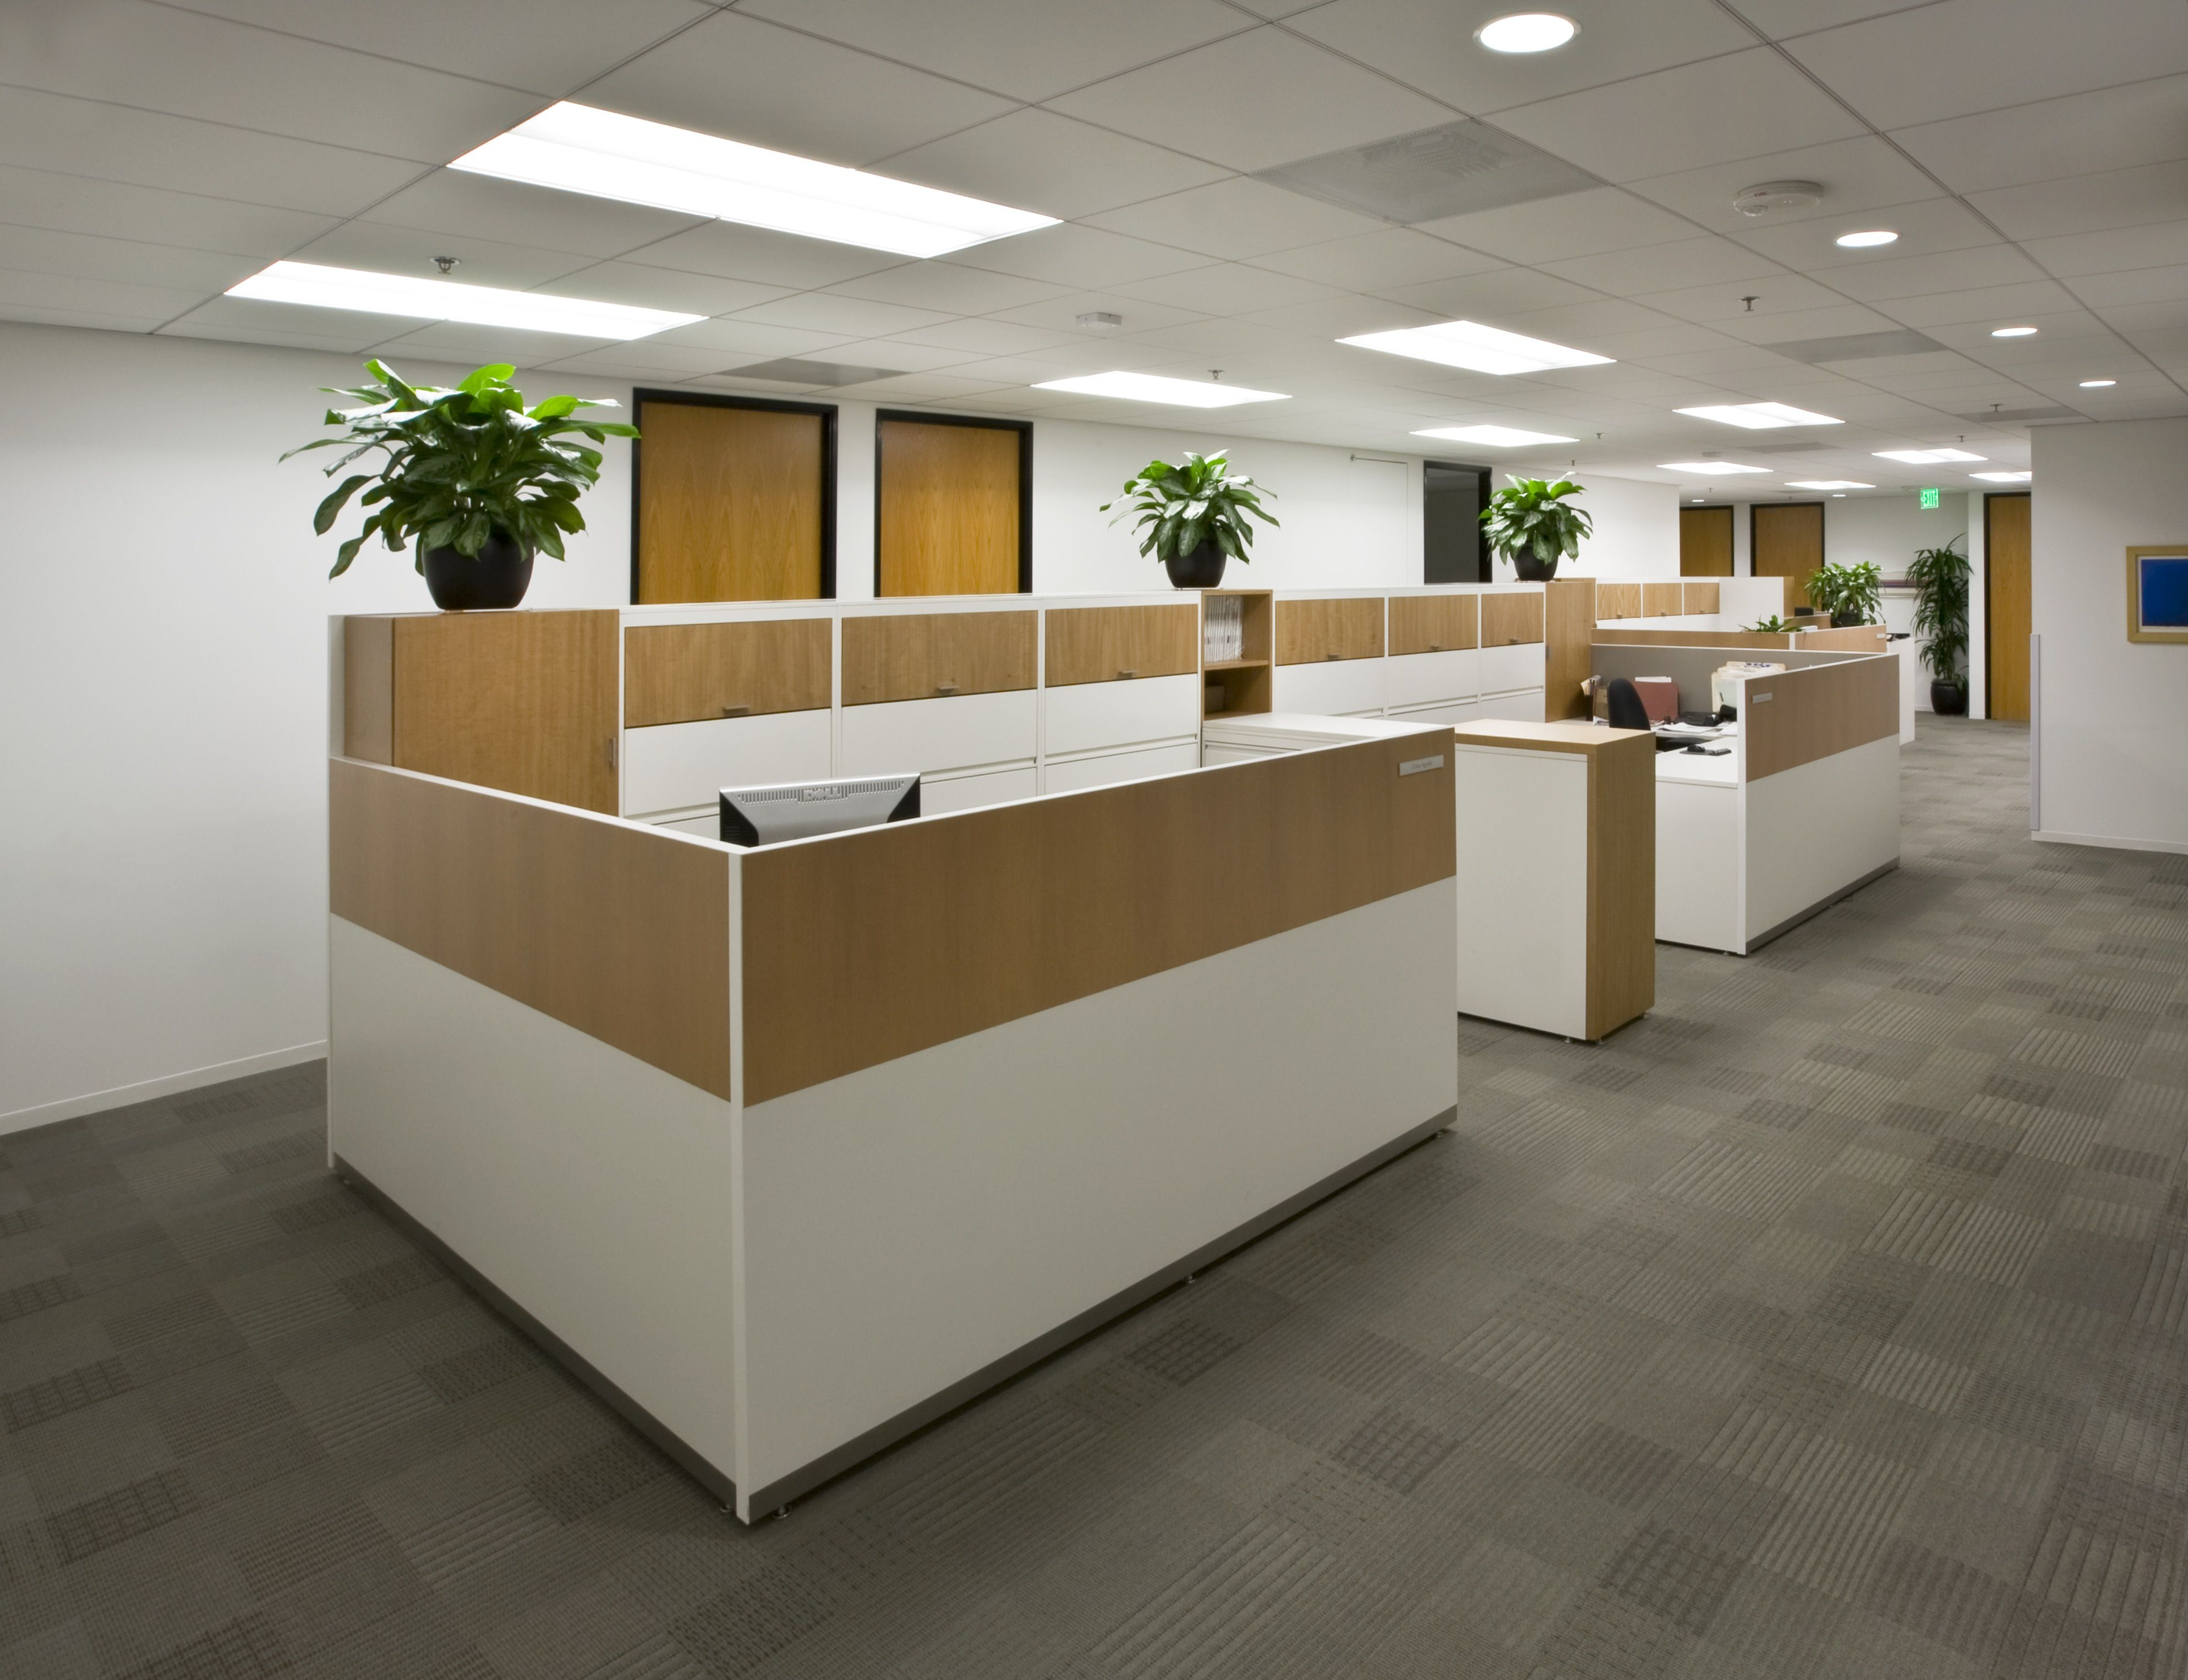 office paneling. Wide Angle View Of A #legal Office #workstations With #wood Paneling P